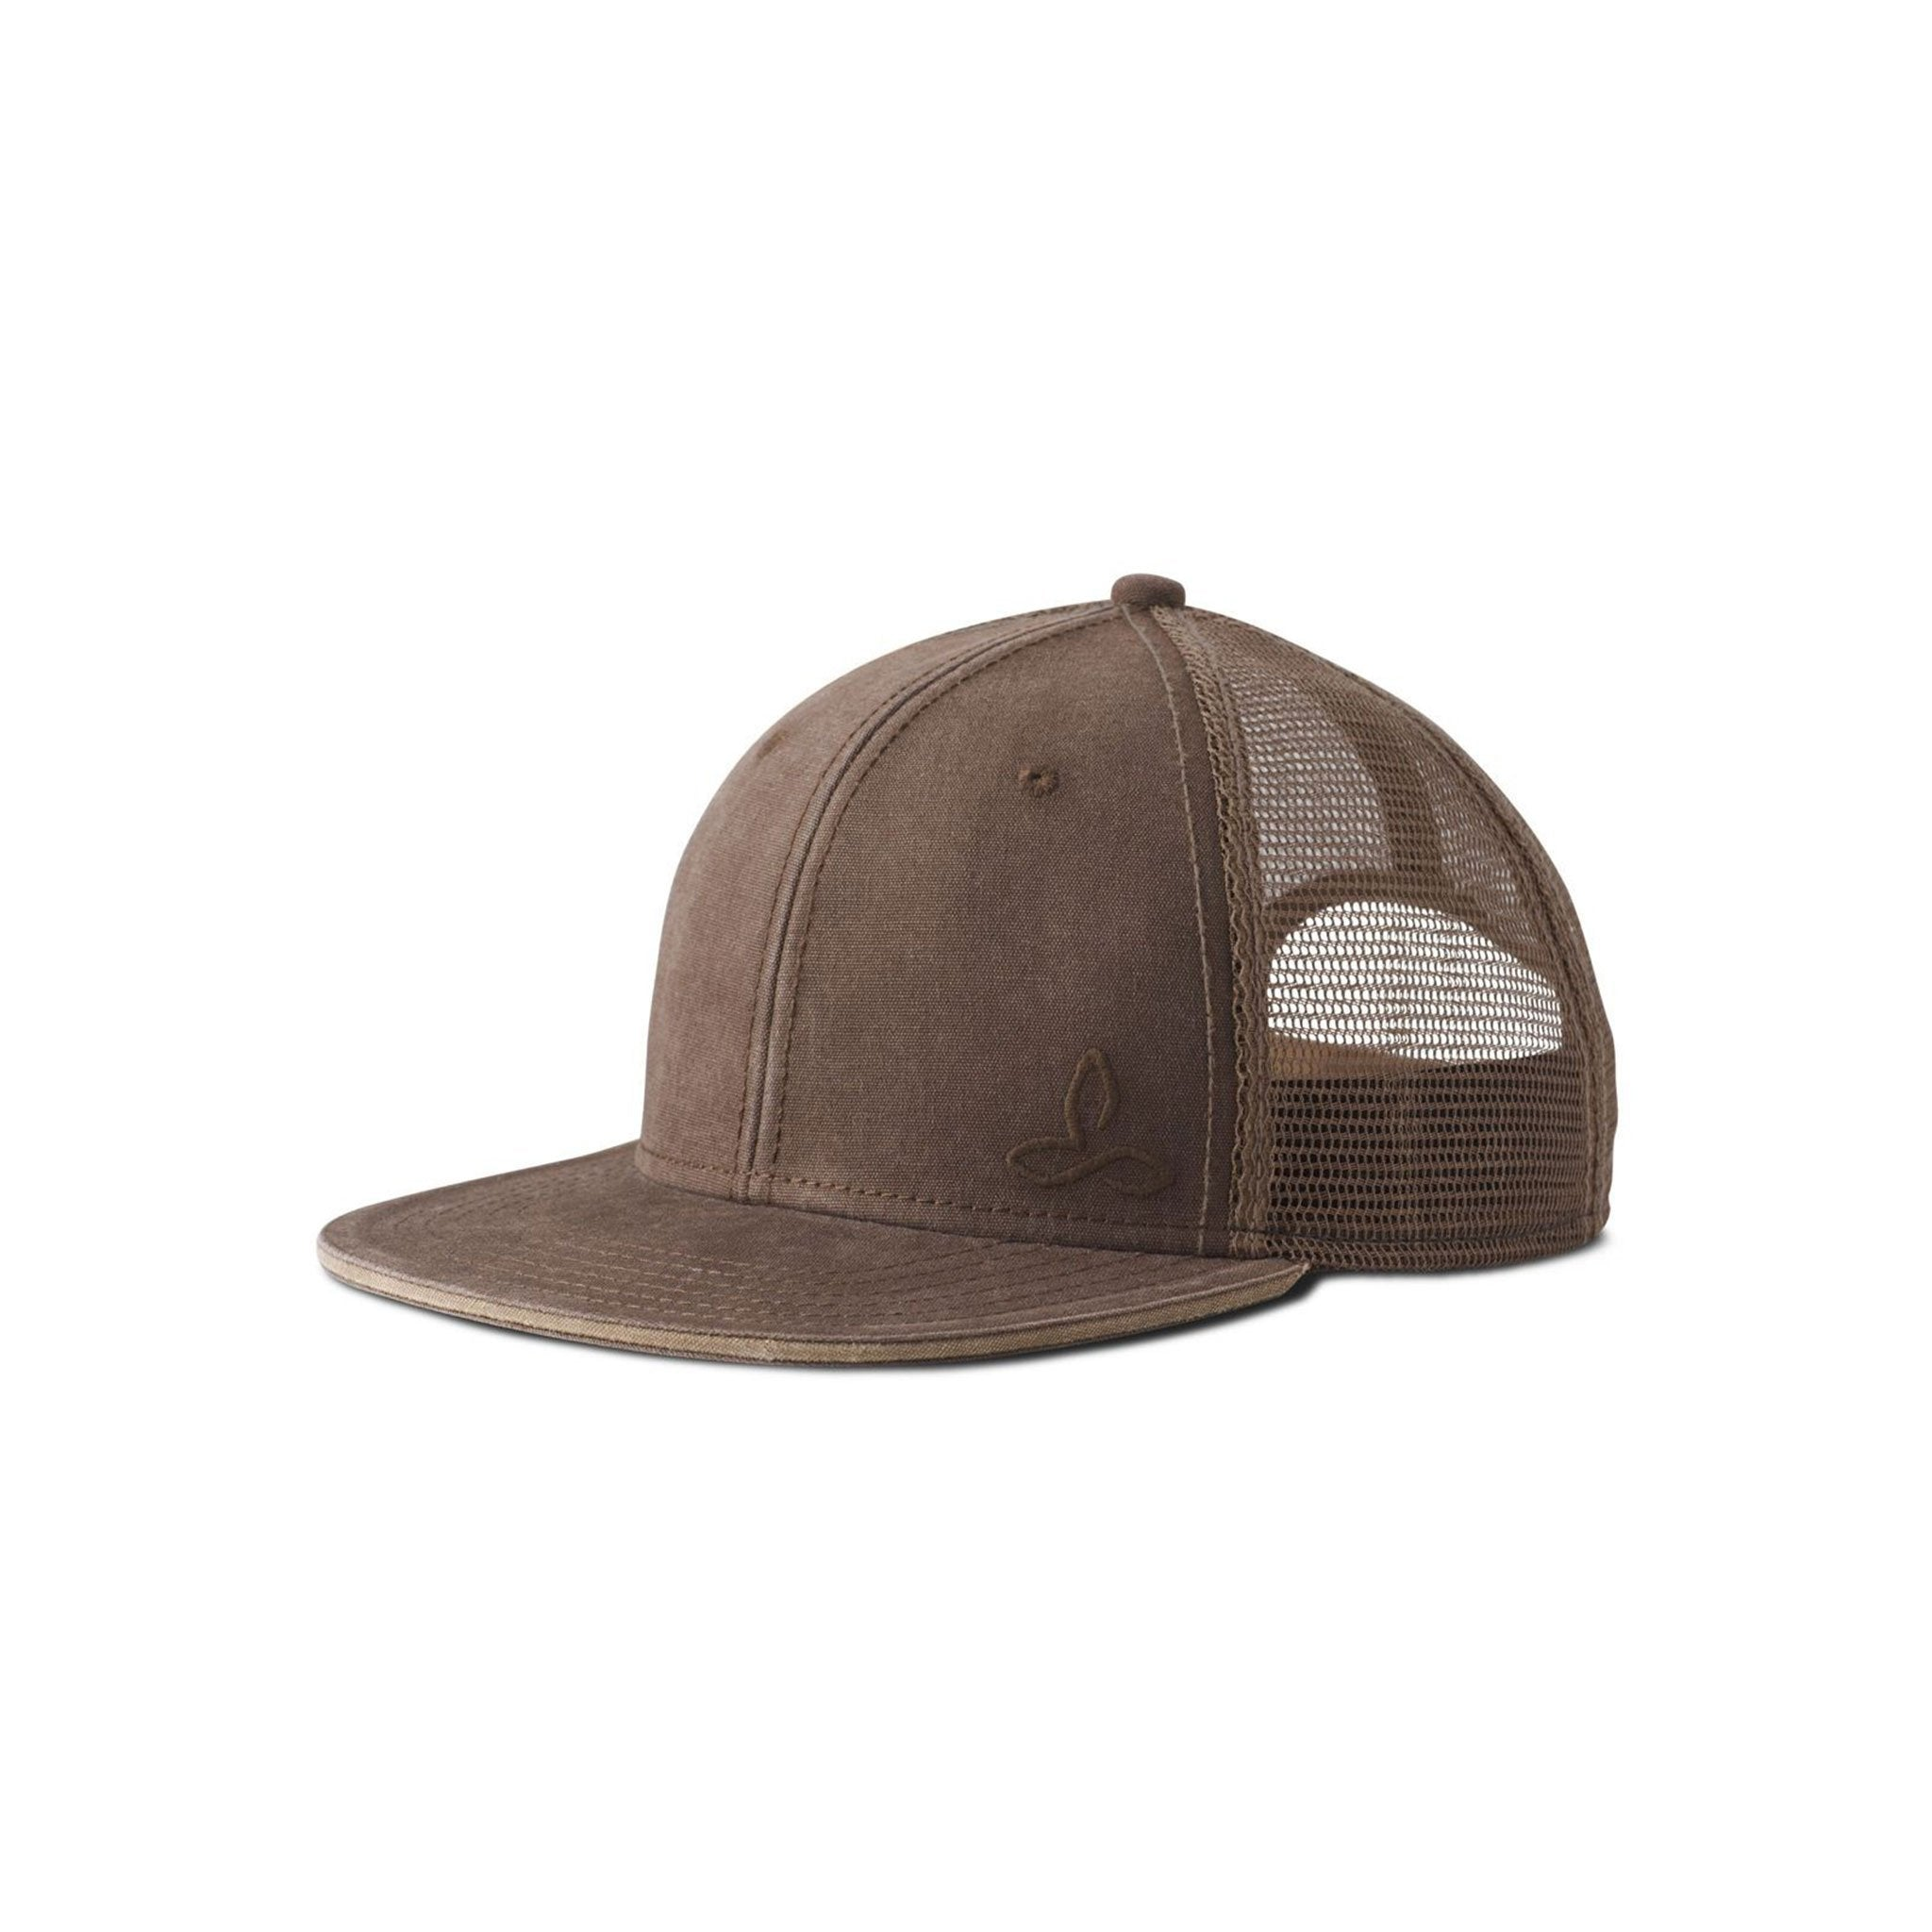 Men s Caps - Alpine Start Outfitters 39f69b2523be